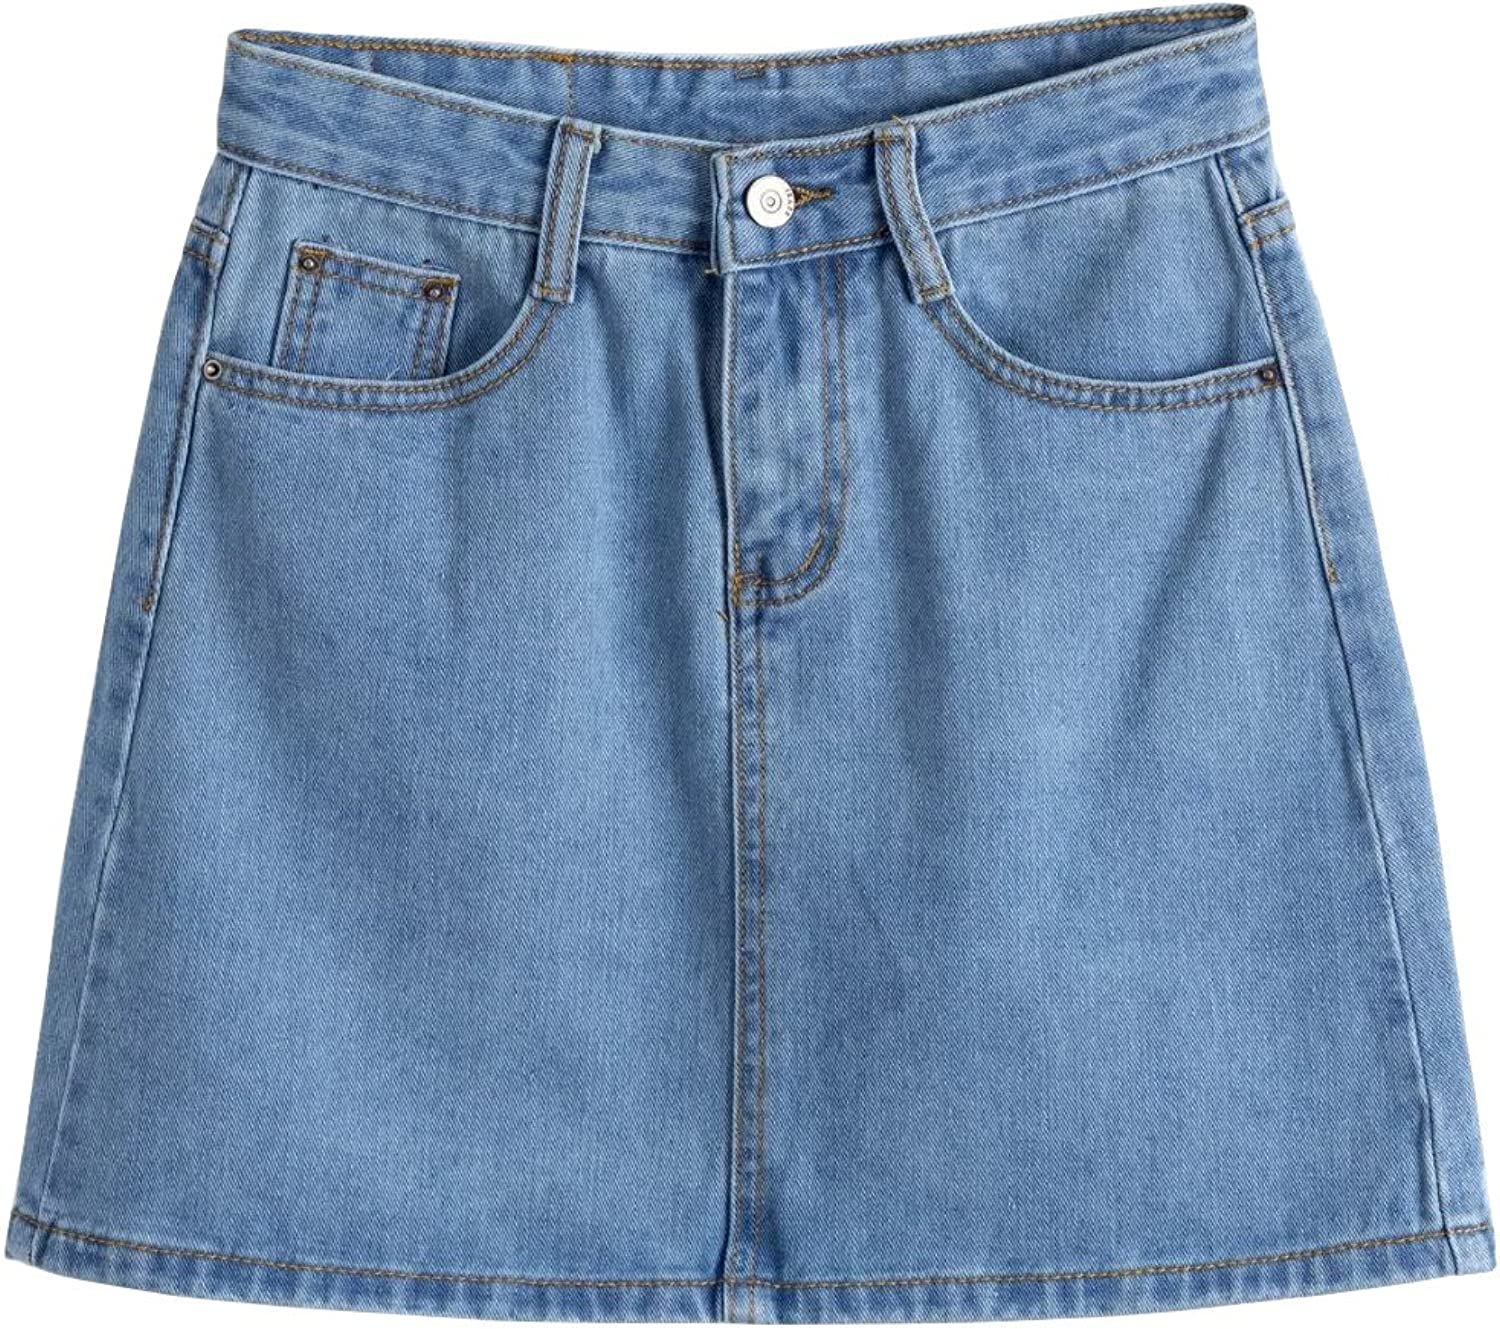 Tanming Women Casual Loose Aline Denim Skirts